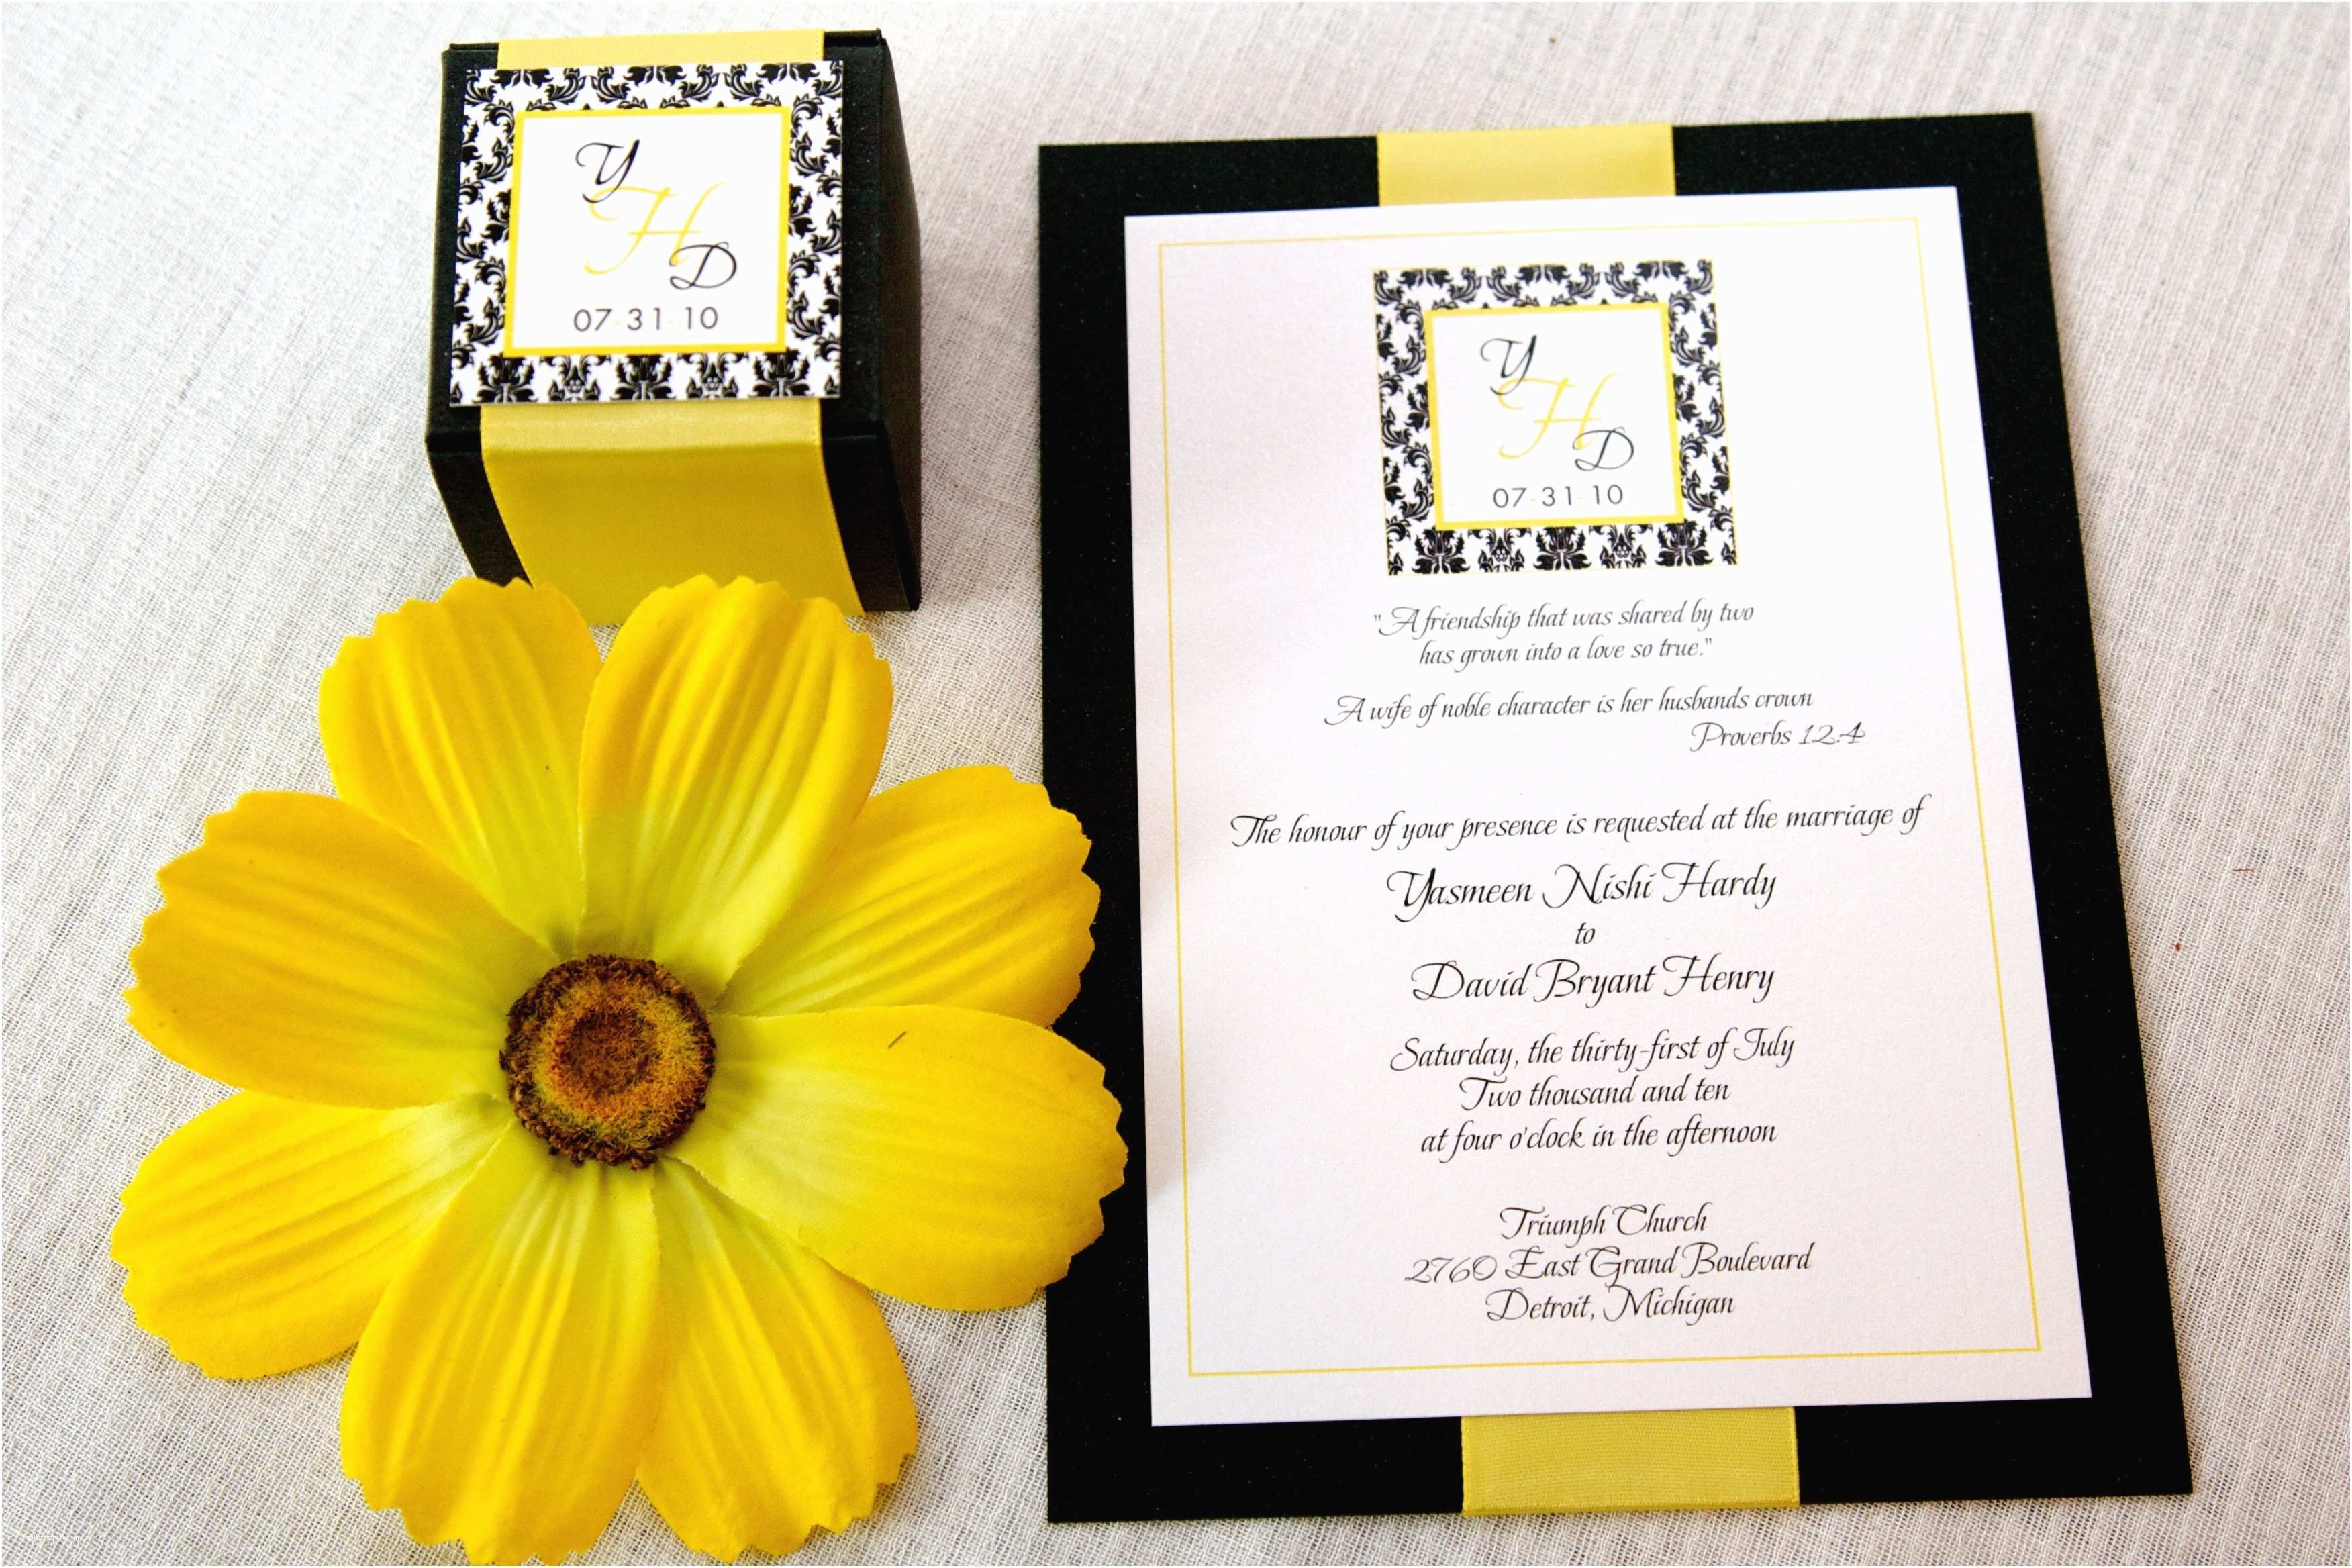 Make Your Own Wedding Shower Invitations Free Design Your Own Wedding Invitations Line